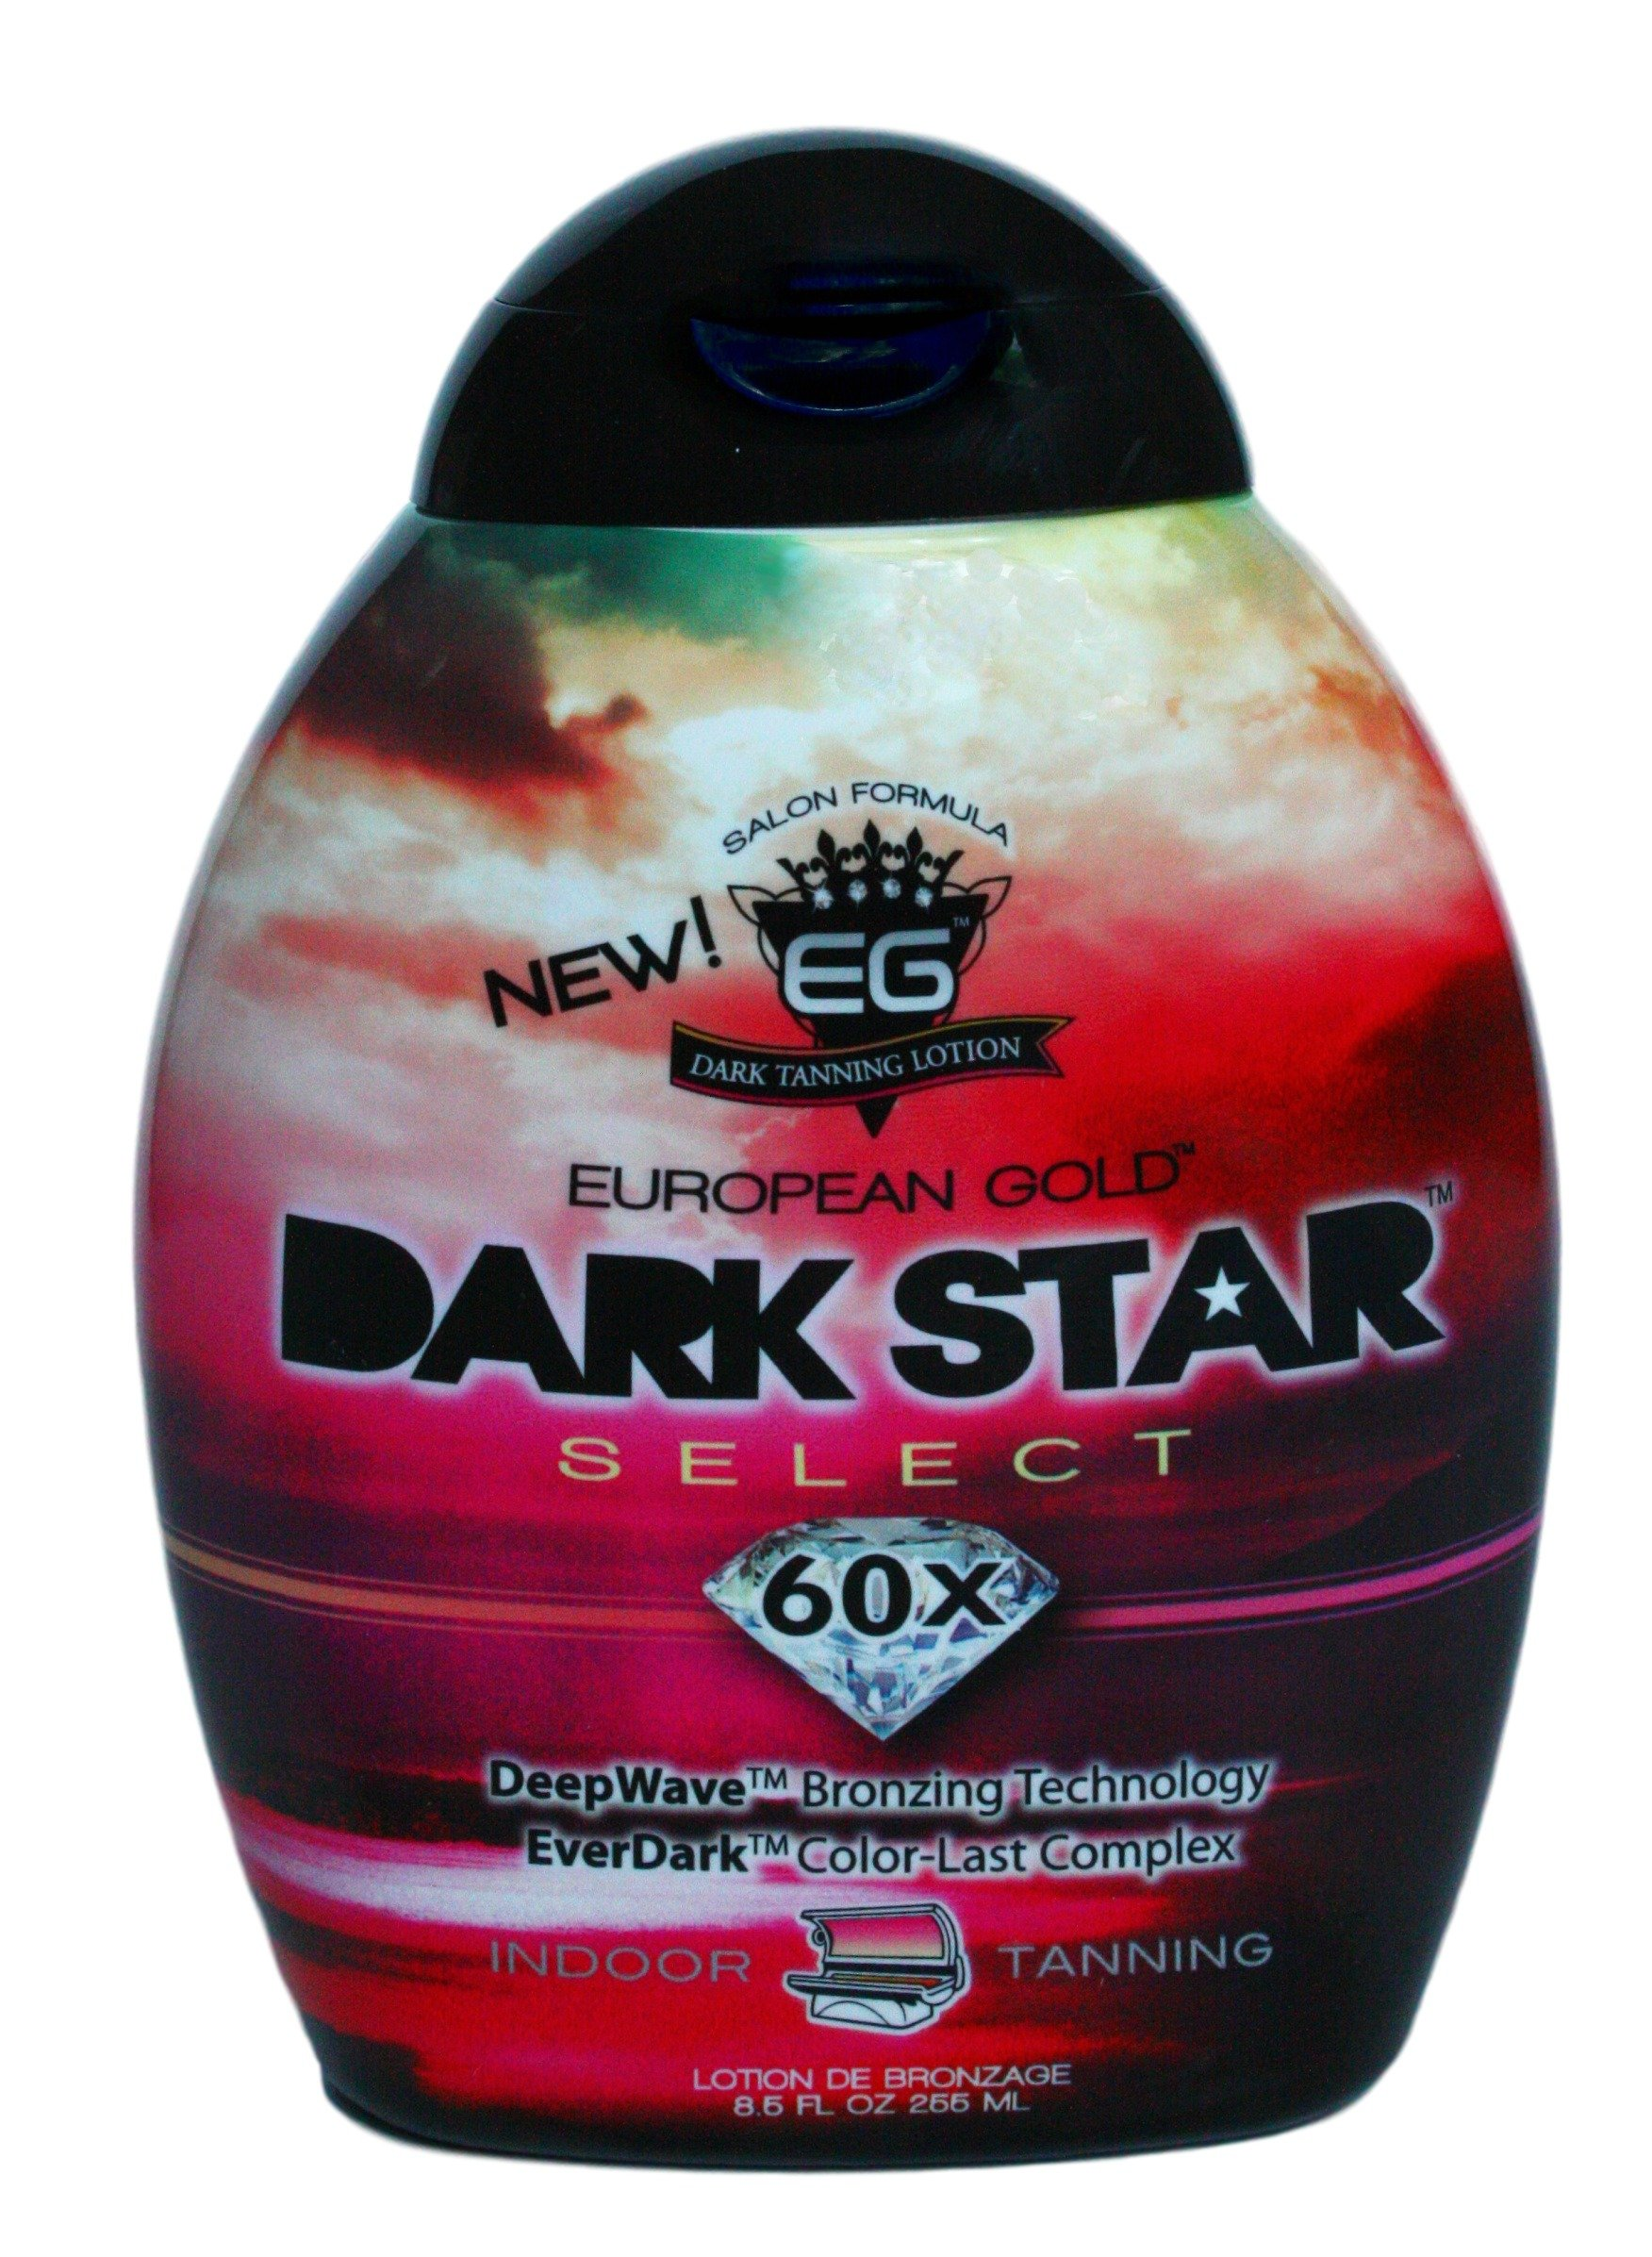 European Gold Dark Star Select, 60x Indoor Tanning Lotion, 8.5 fl oz